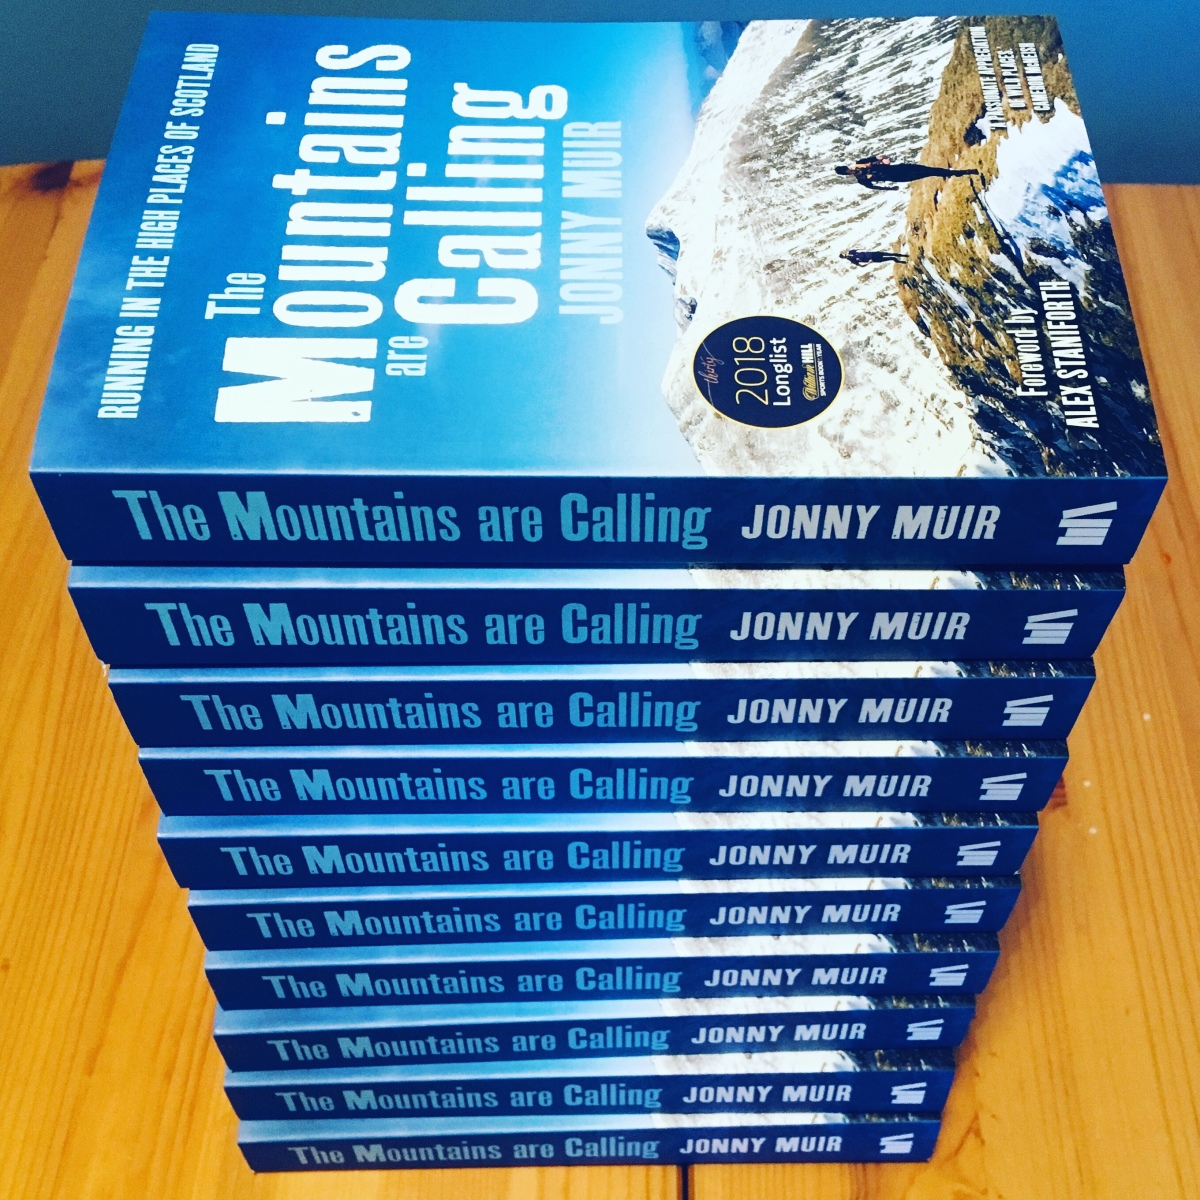 The Mountains are Calling - paperback published today